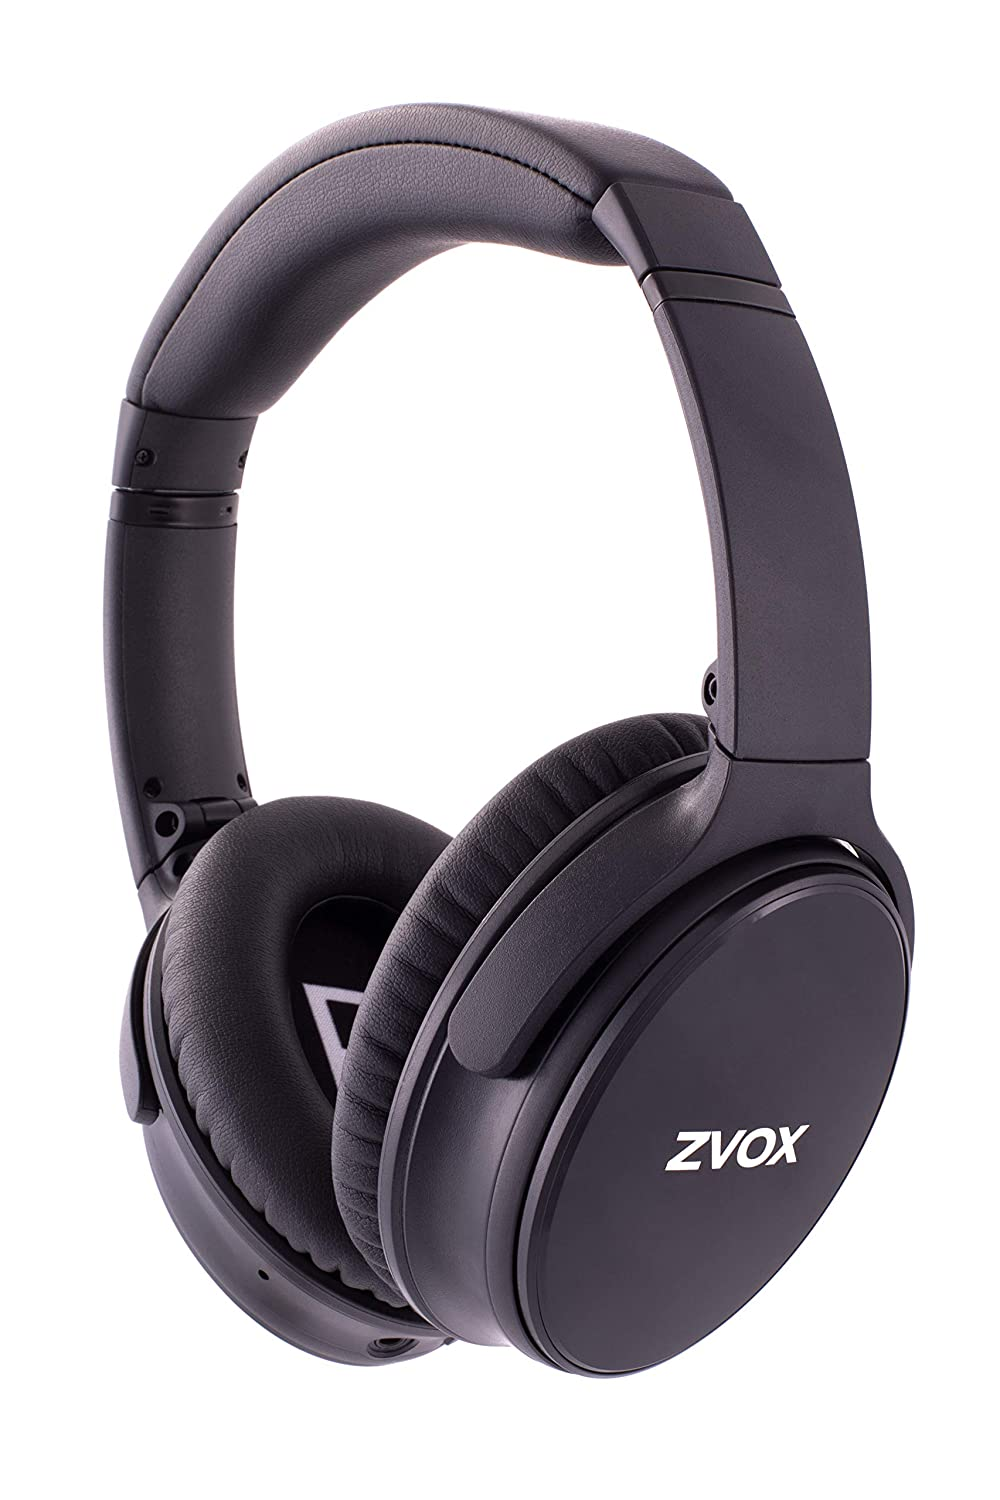 ZVOX AccuVoice AV50 Noise Cancelling Headphones Black